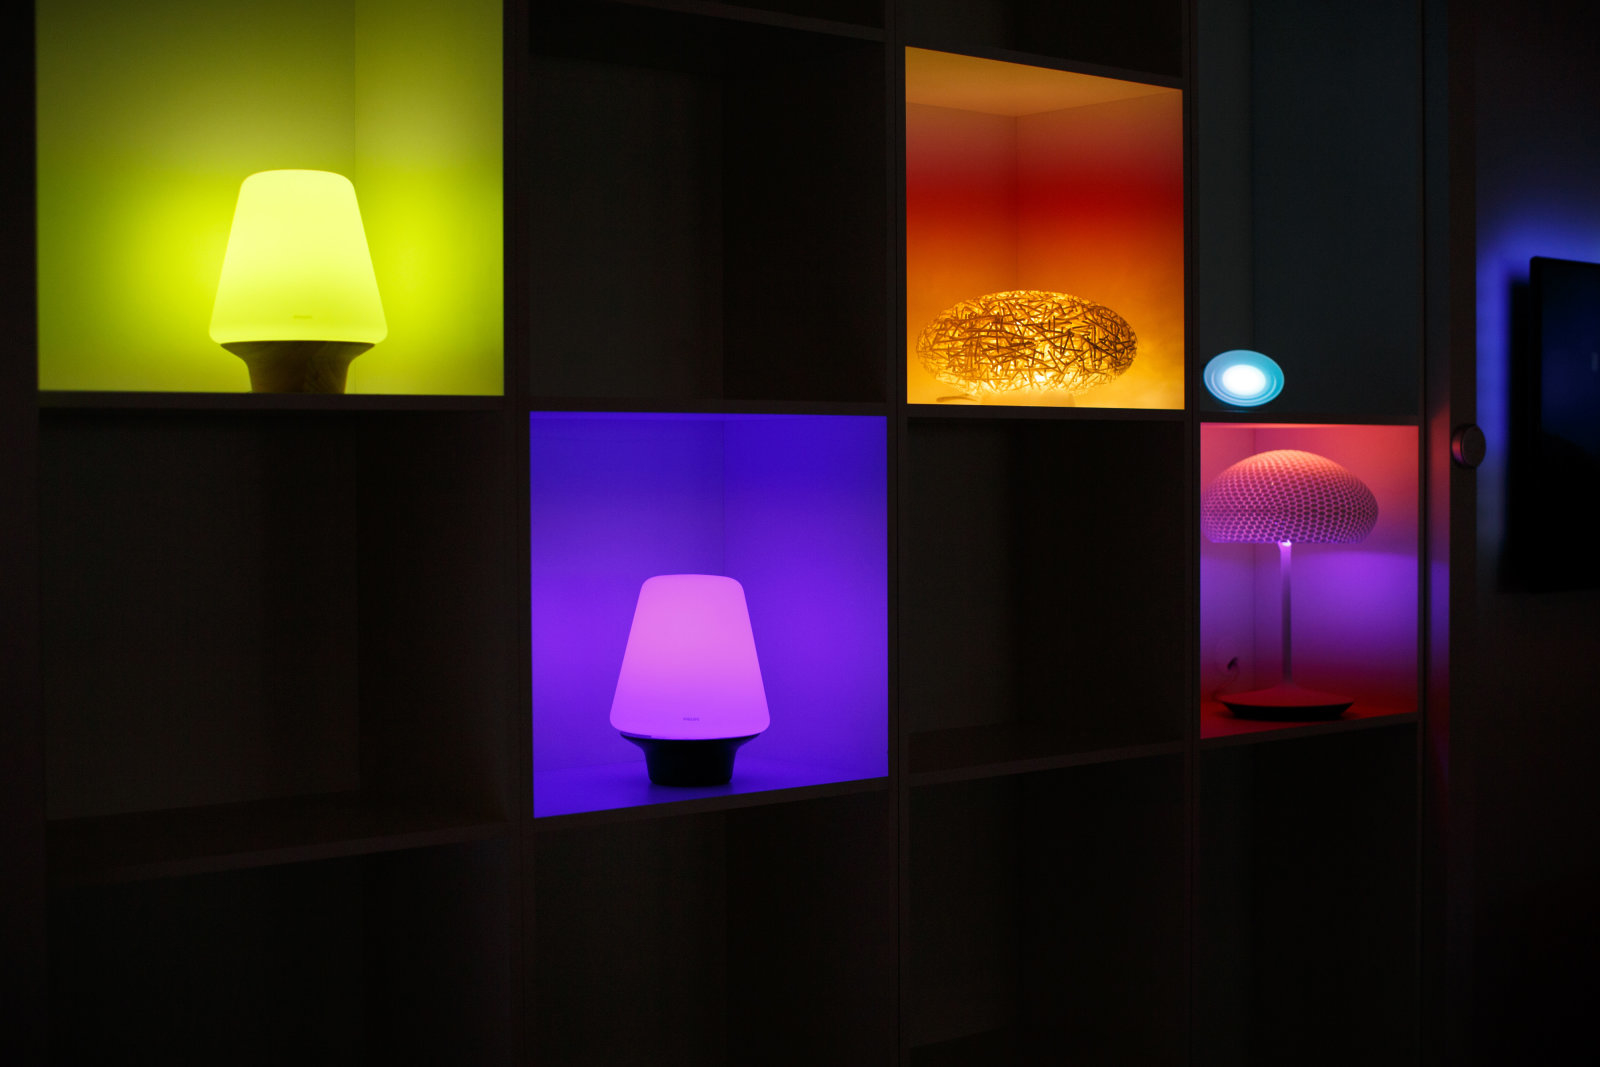 Philips hue personal wireless lights, manufactured by Royal Philips NV, sit illuminated during the company's annual general meeting in Amsterdam, Netherlands, on Thursday, May 1, 2014. Philips is focusing on higher-margin areas such as lighting products that save energy, and health and wellness offerings, to move away from its consumer-electronics past amid competition from Asian rivals such as Samsung Electronics Co. and Sony Corp. Photographer: Jasper Juinen/Bloomberg via Getty Images